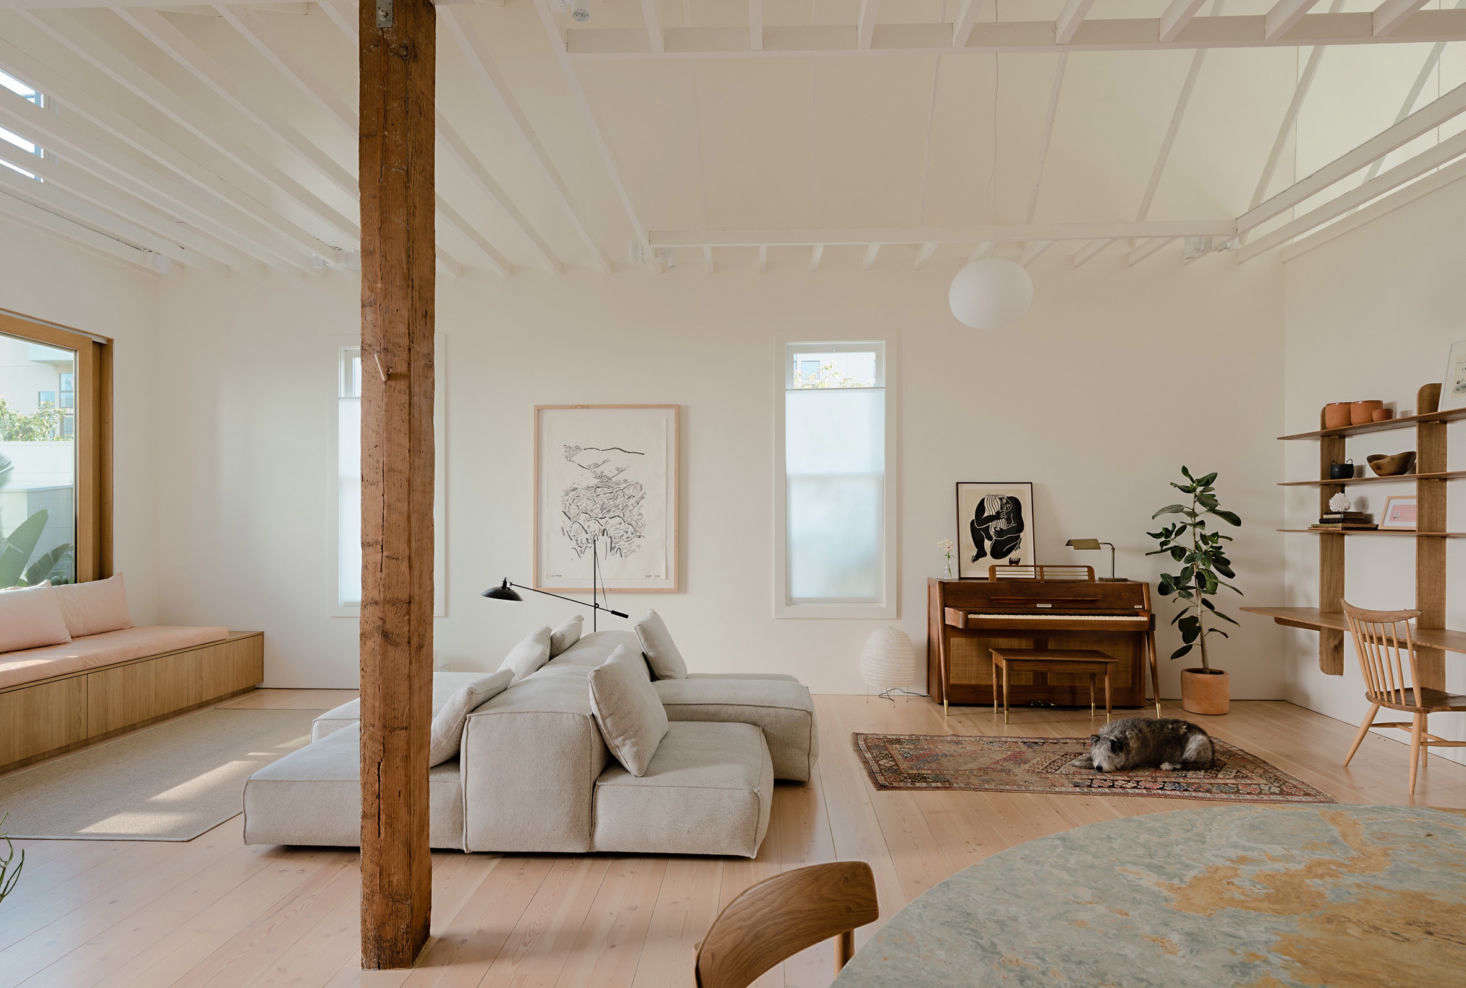 """""""I'm regularly inspired by Japanese and Scandinavian design, and the tradition of respecting natural materials, the craft of building, and the beauty of a well-considered space,"""" Ryan says of his design sensibility. The older building was reimagined for easy entertaining, something the clients do often. The original rafters in the open living room were painted over and the timber columns refinished. The Extrasoft Sofa is a Piero Lissoni design."""